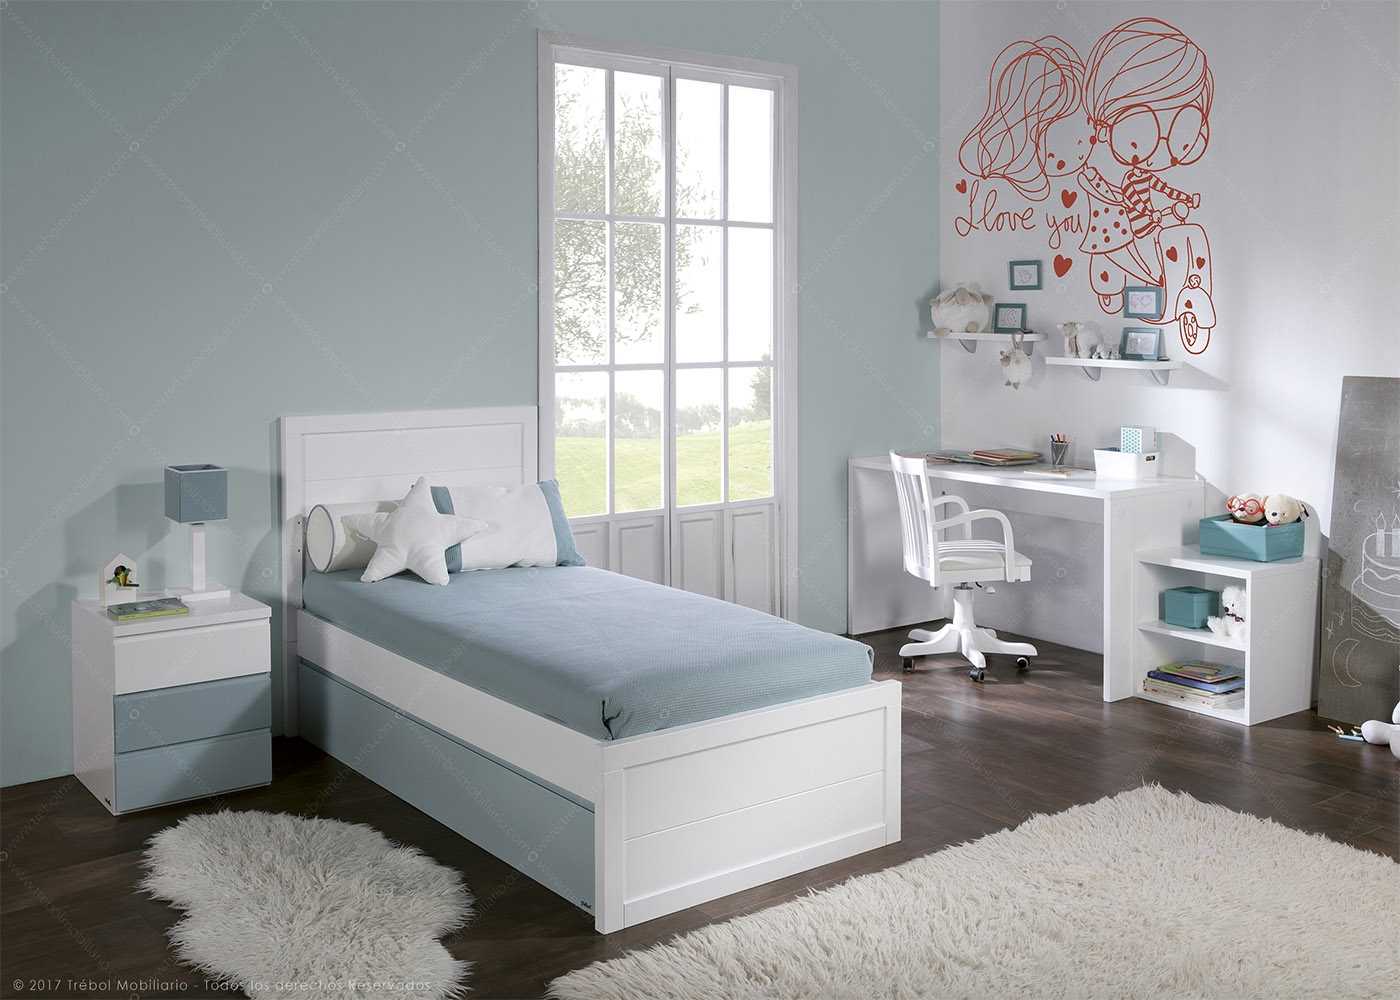 chambre fille ou gar on design et de qualit trebol chez ksl living. Black Bedroom Furniture Sets. Home Design Ideas